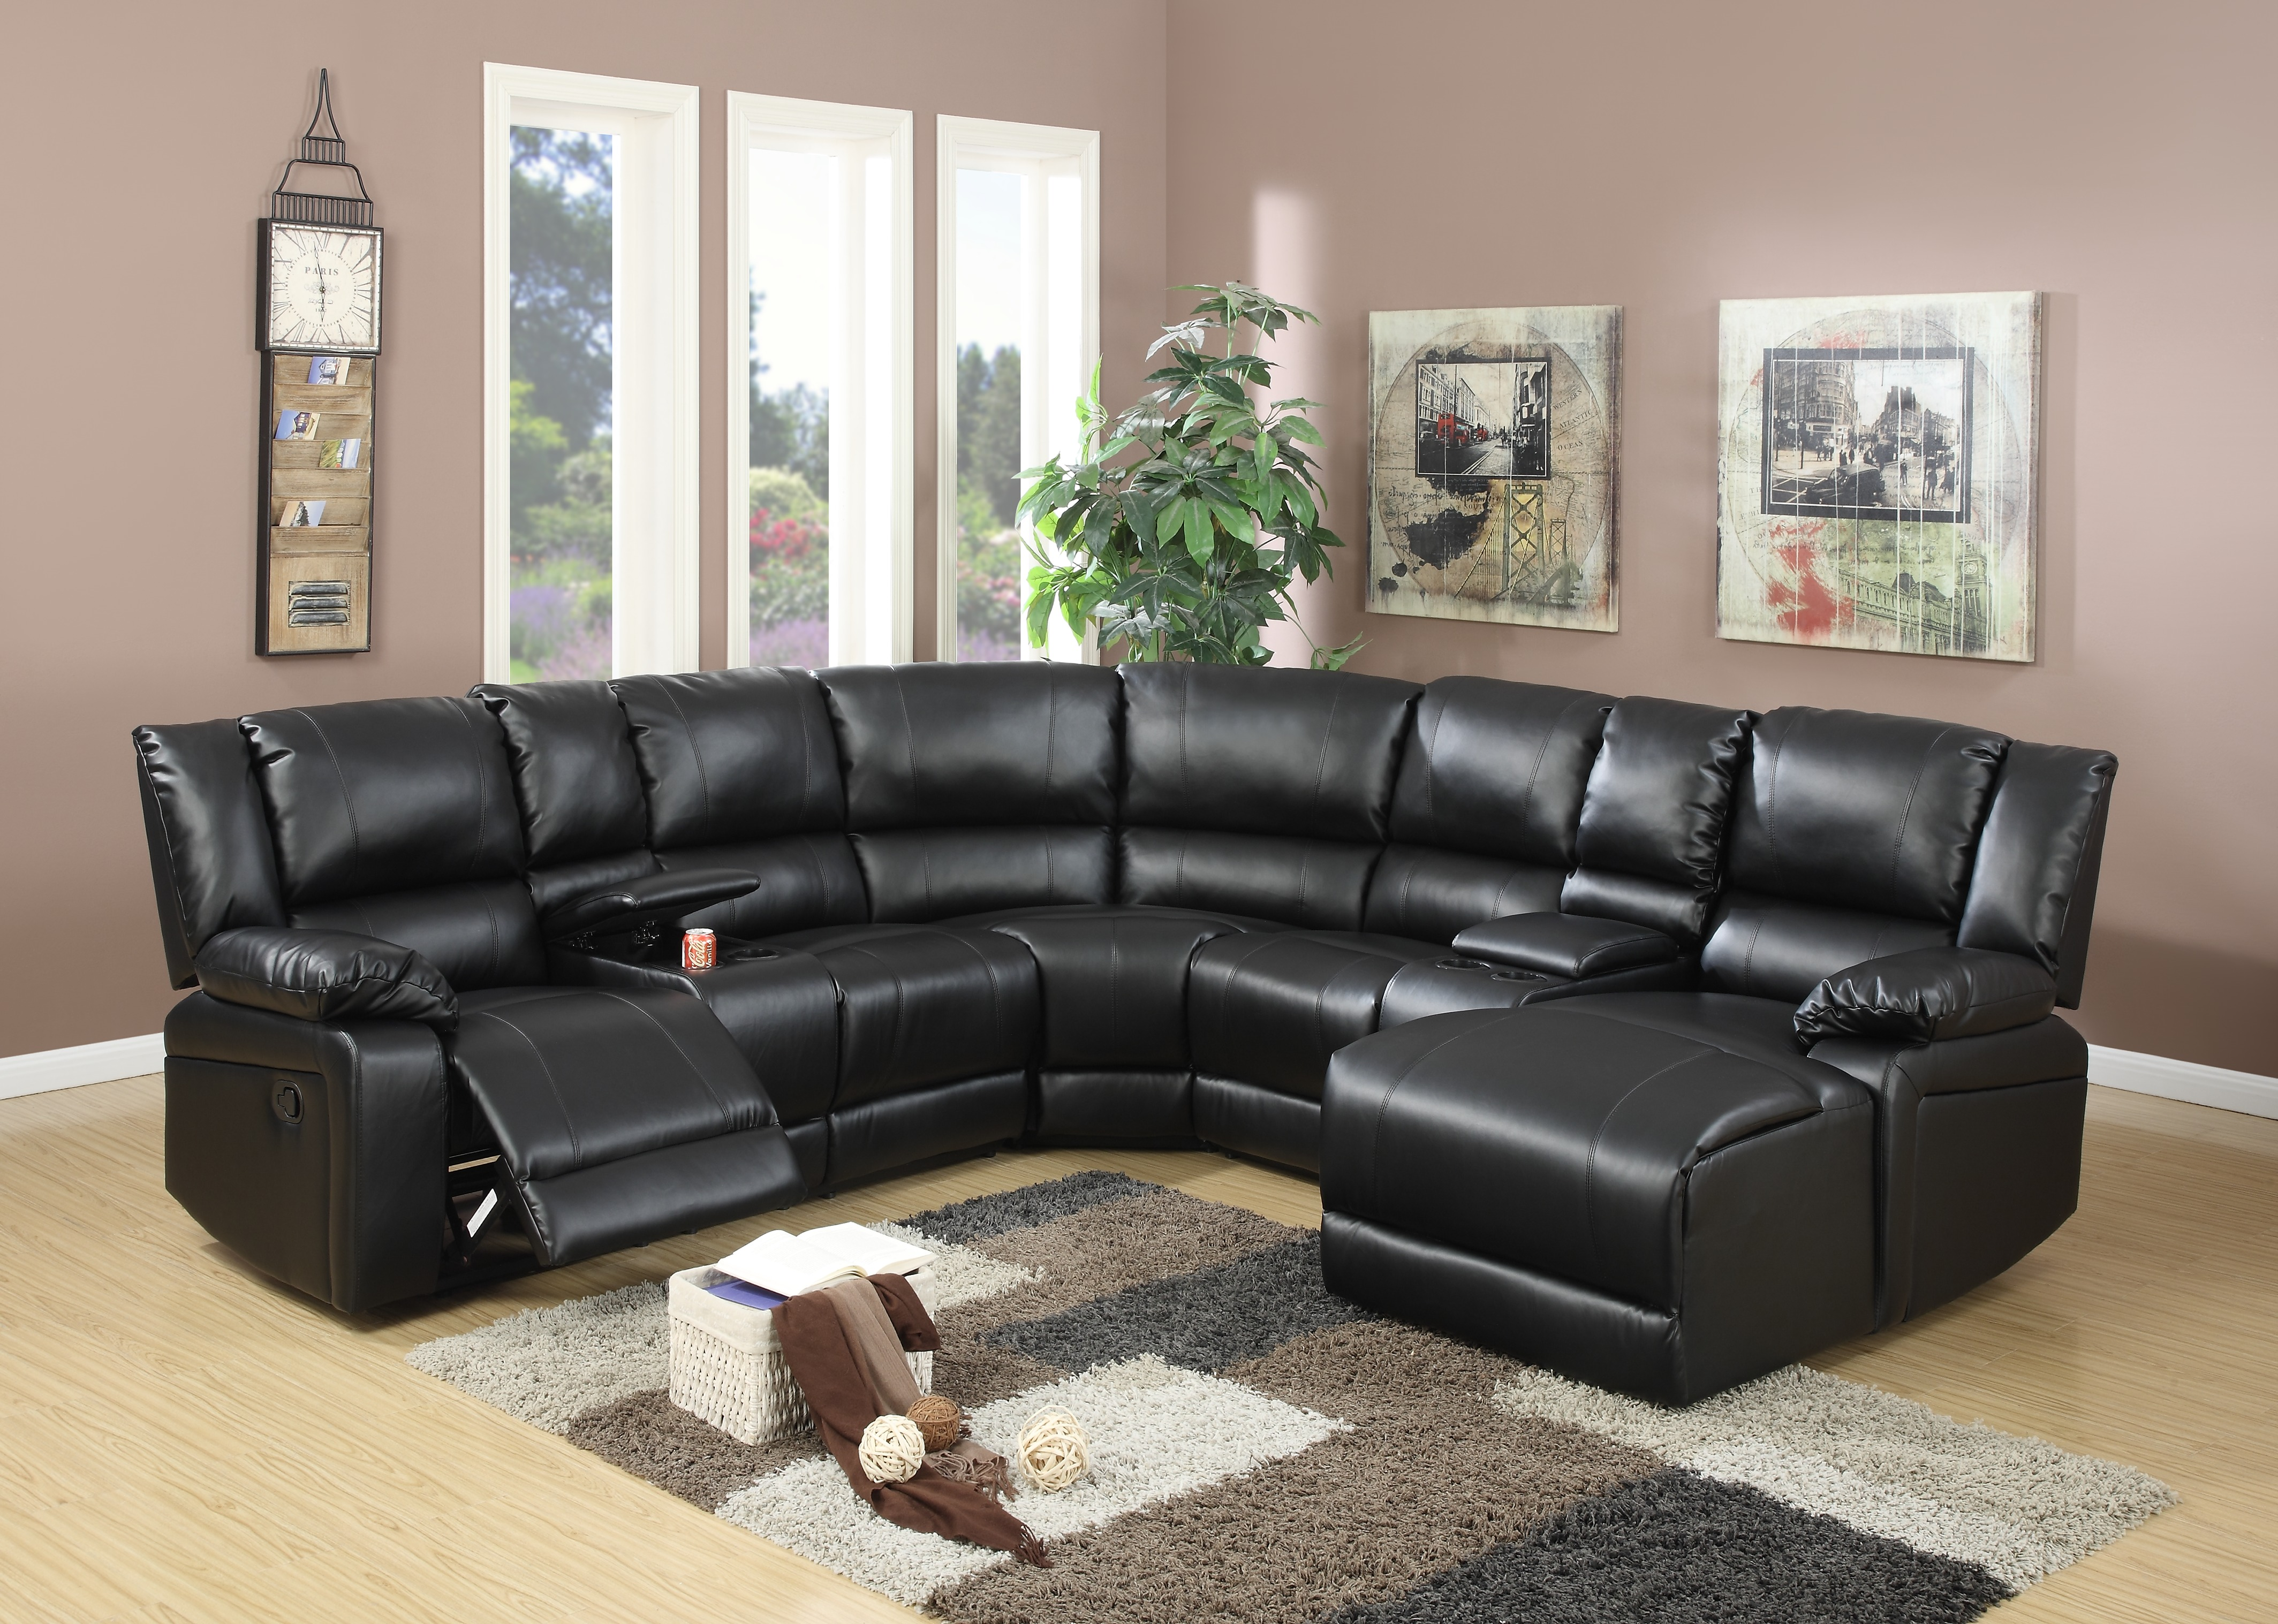 Schwimmbeckensanierung Gfk Sectional Sofas That Recline Smith 8000 Series Sofa Room